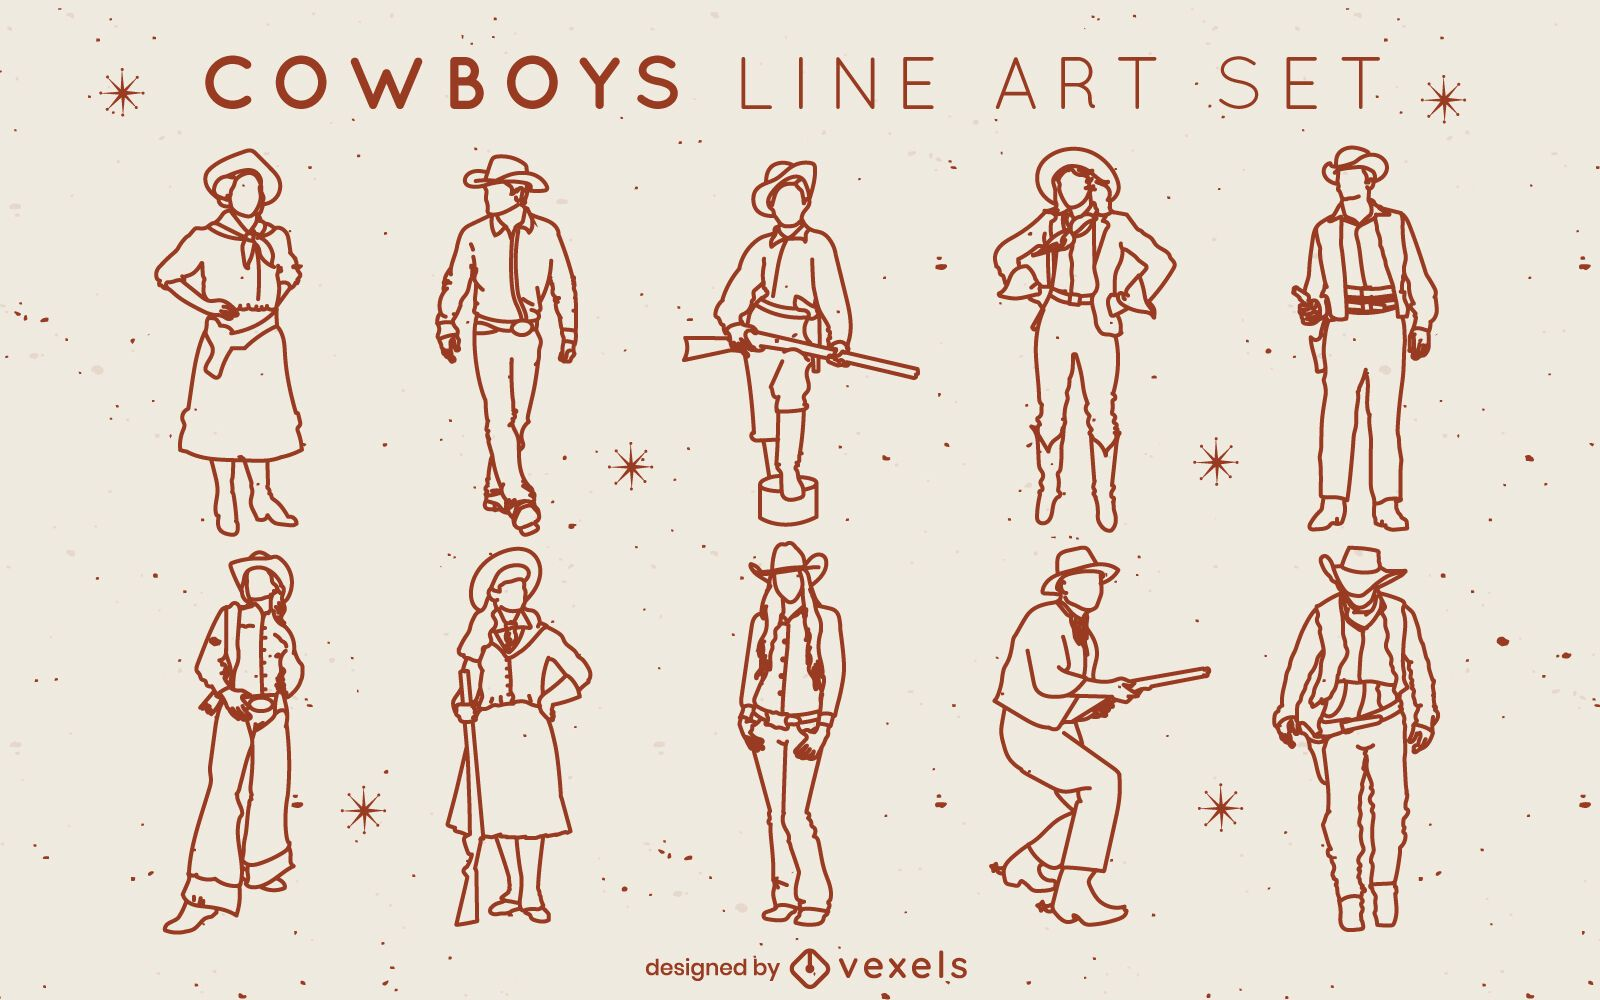 Cowboys and cowgirls stroke set